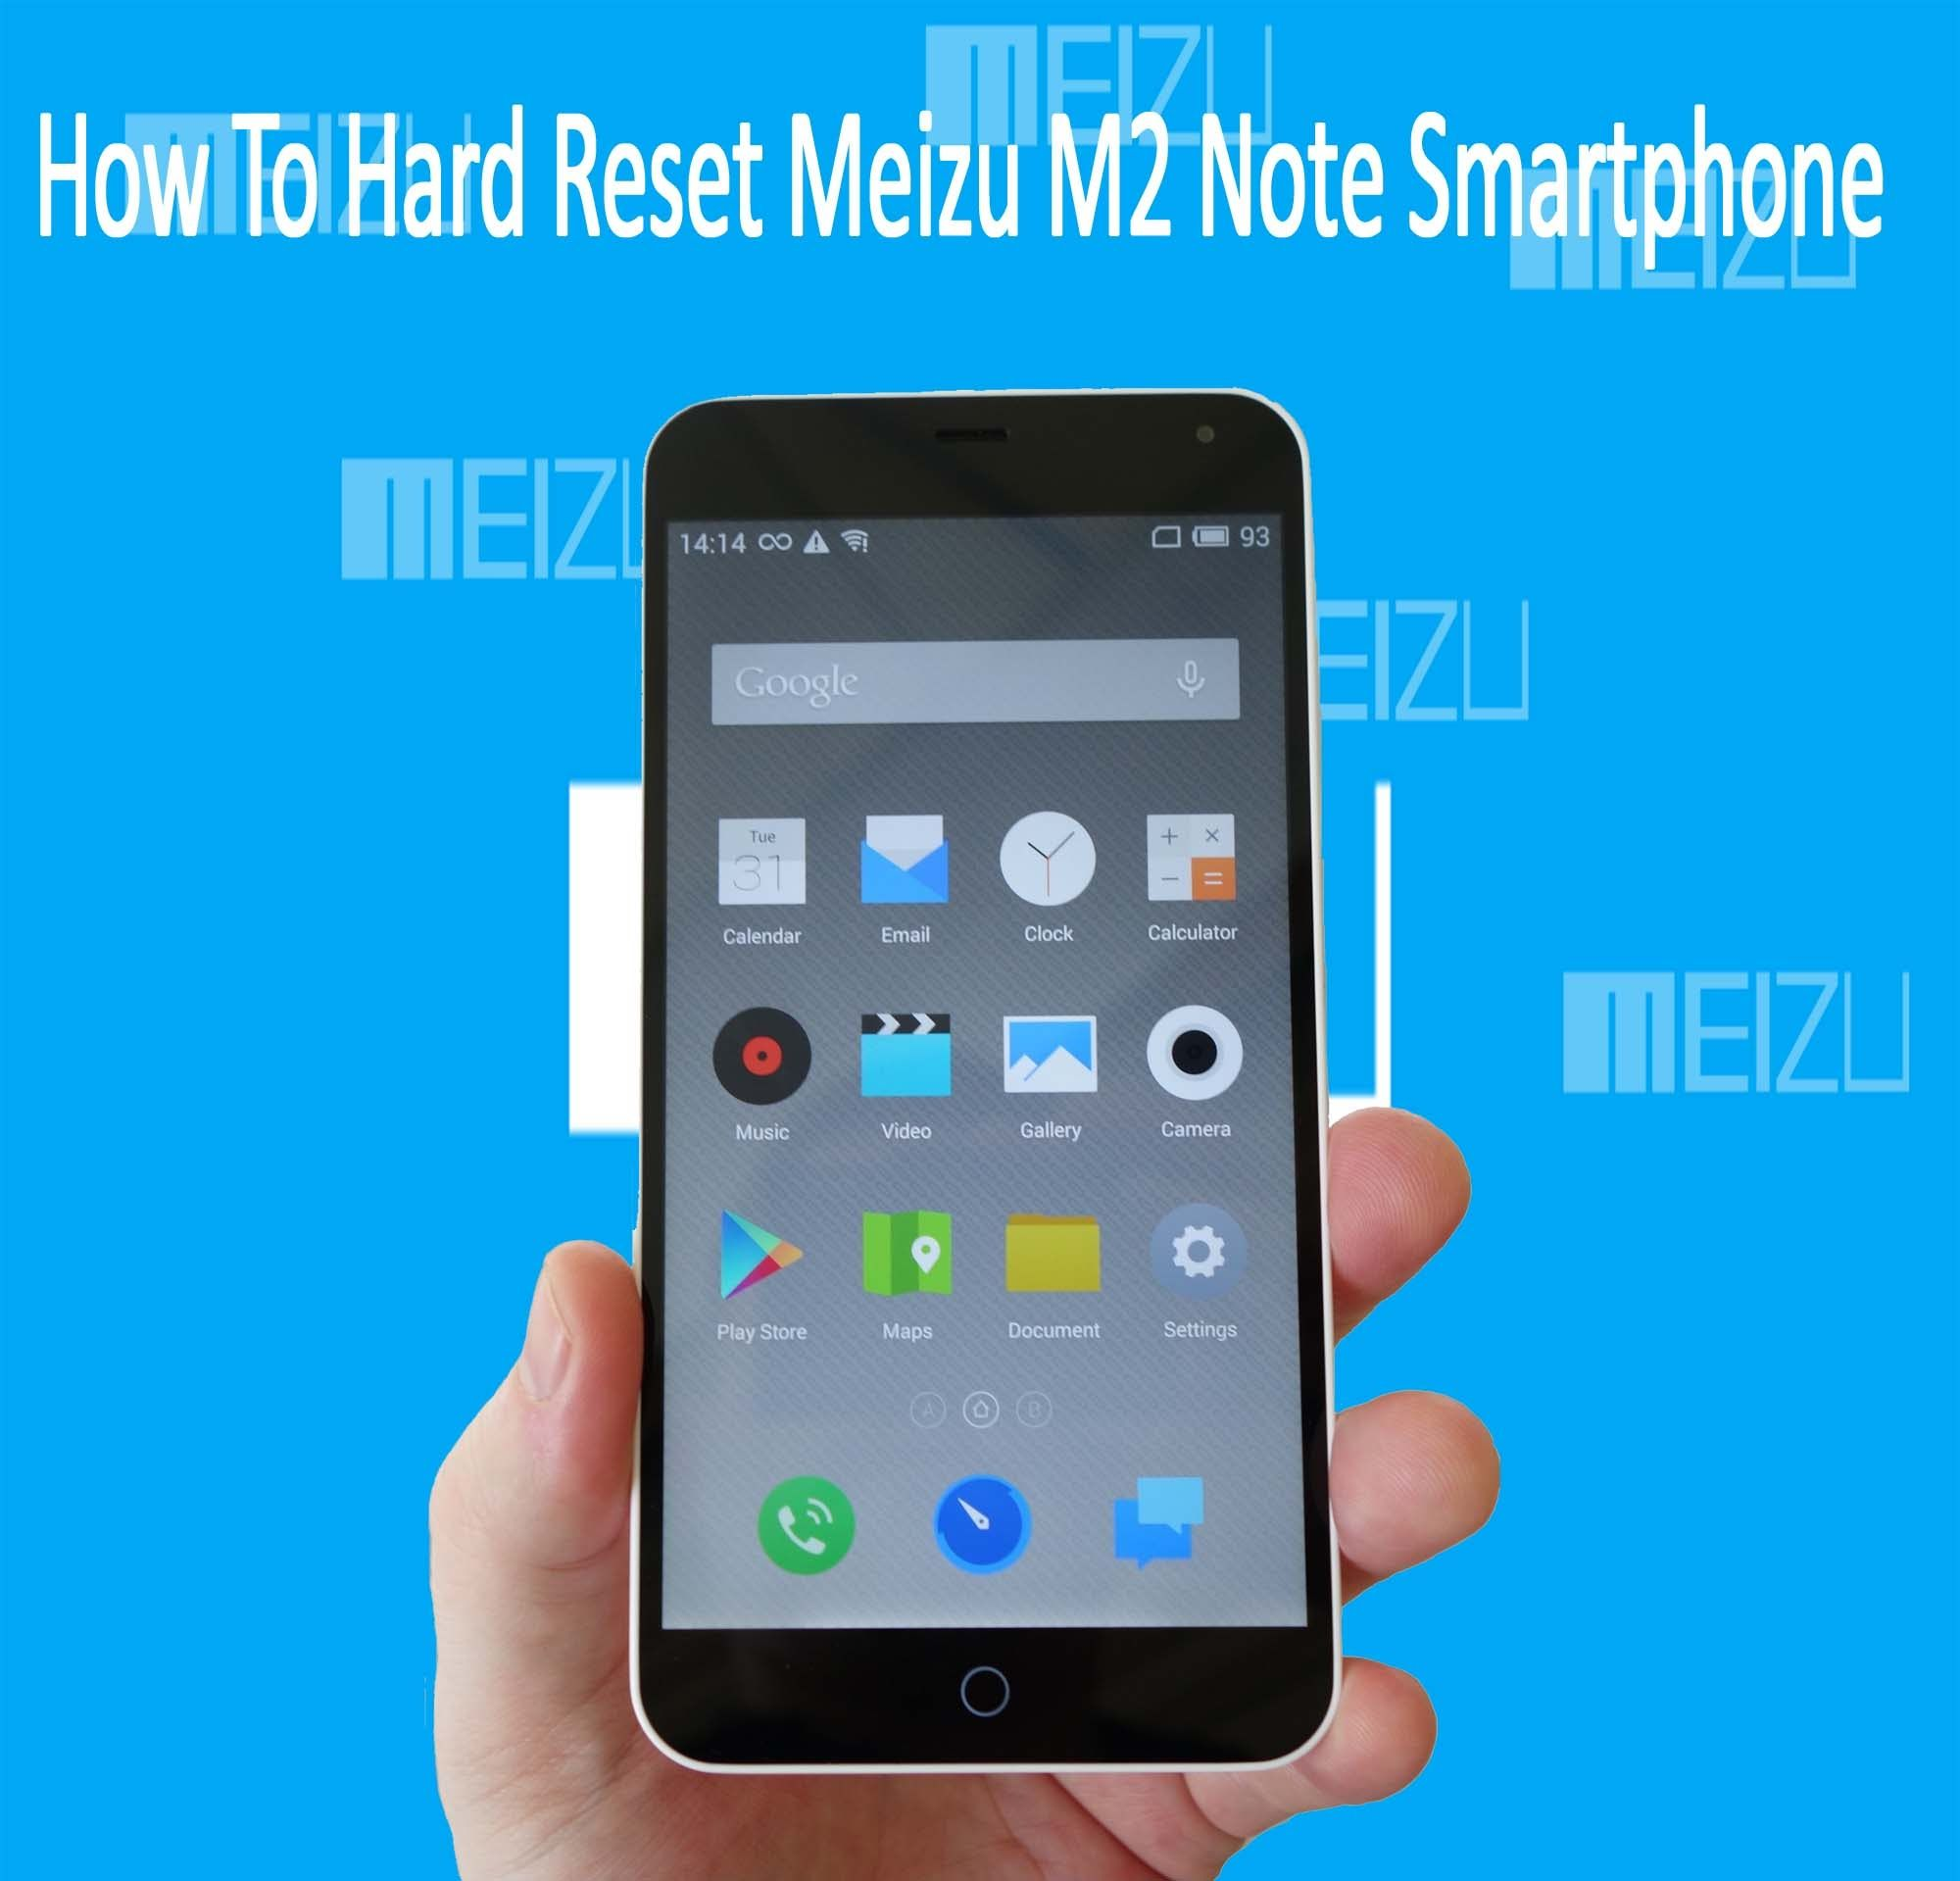 How To Hard Reset and Factory Reset Meizu m2 note Smartphone